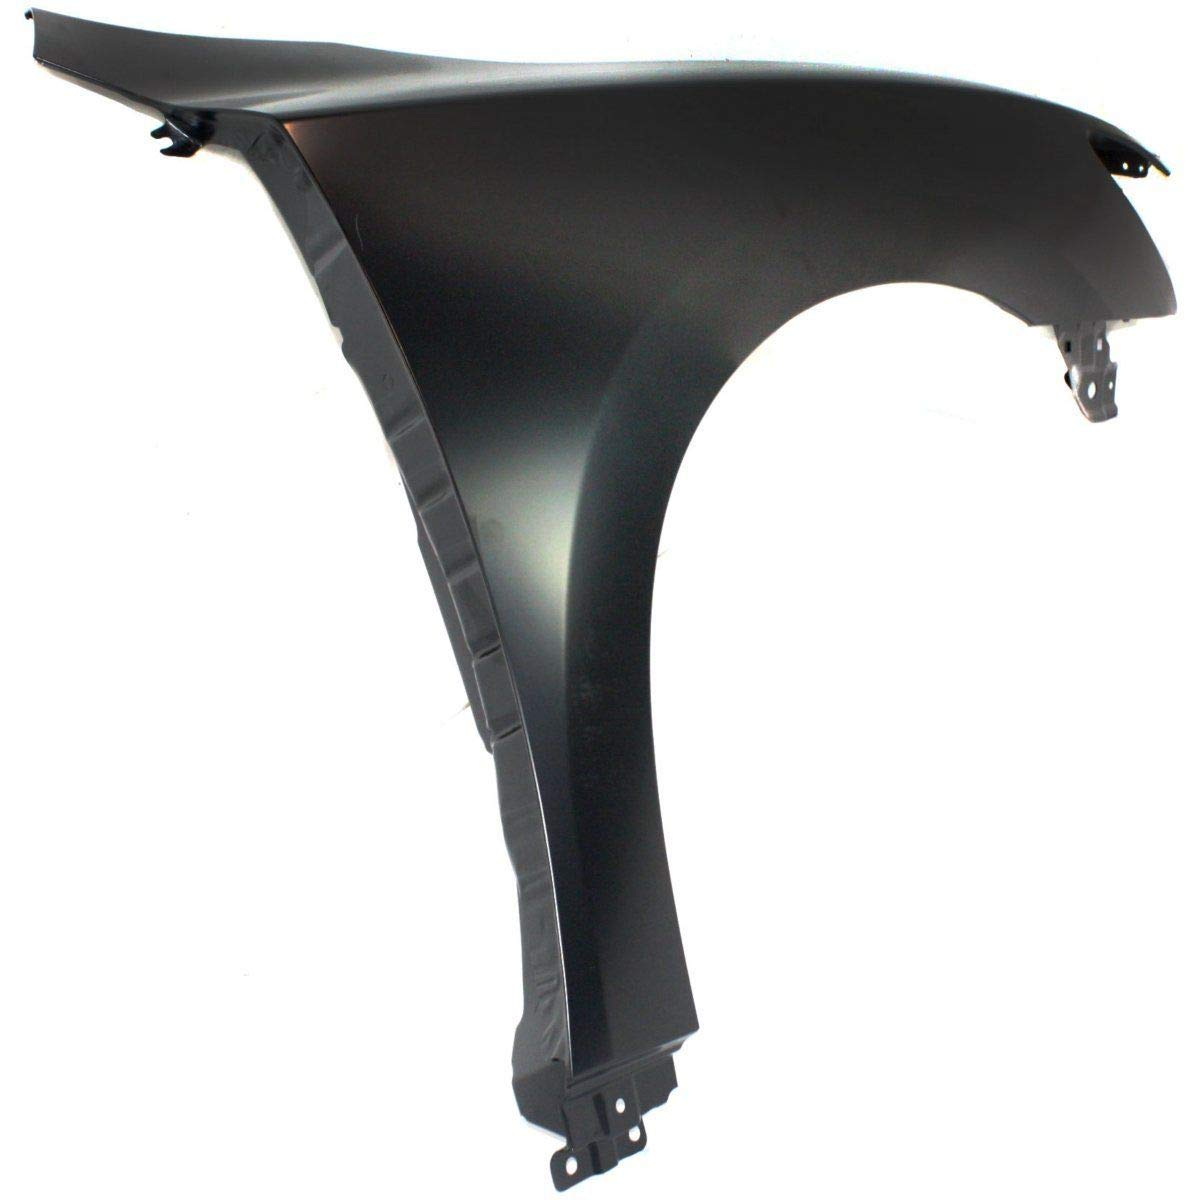 New Front Right Passenger Side Fender For 2009-2014 Nissan Maxima NI1241194 615343281674